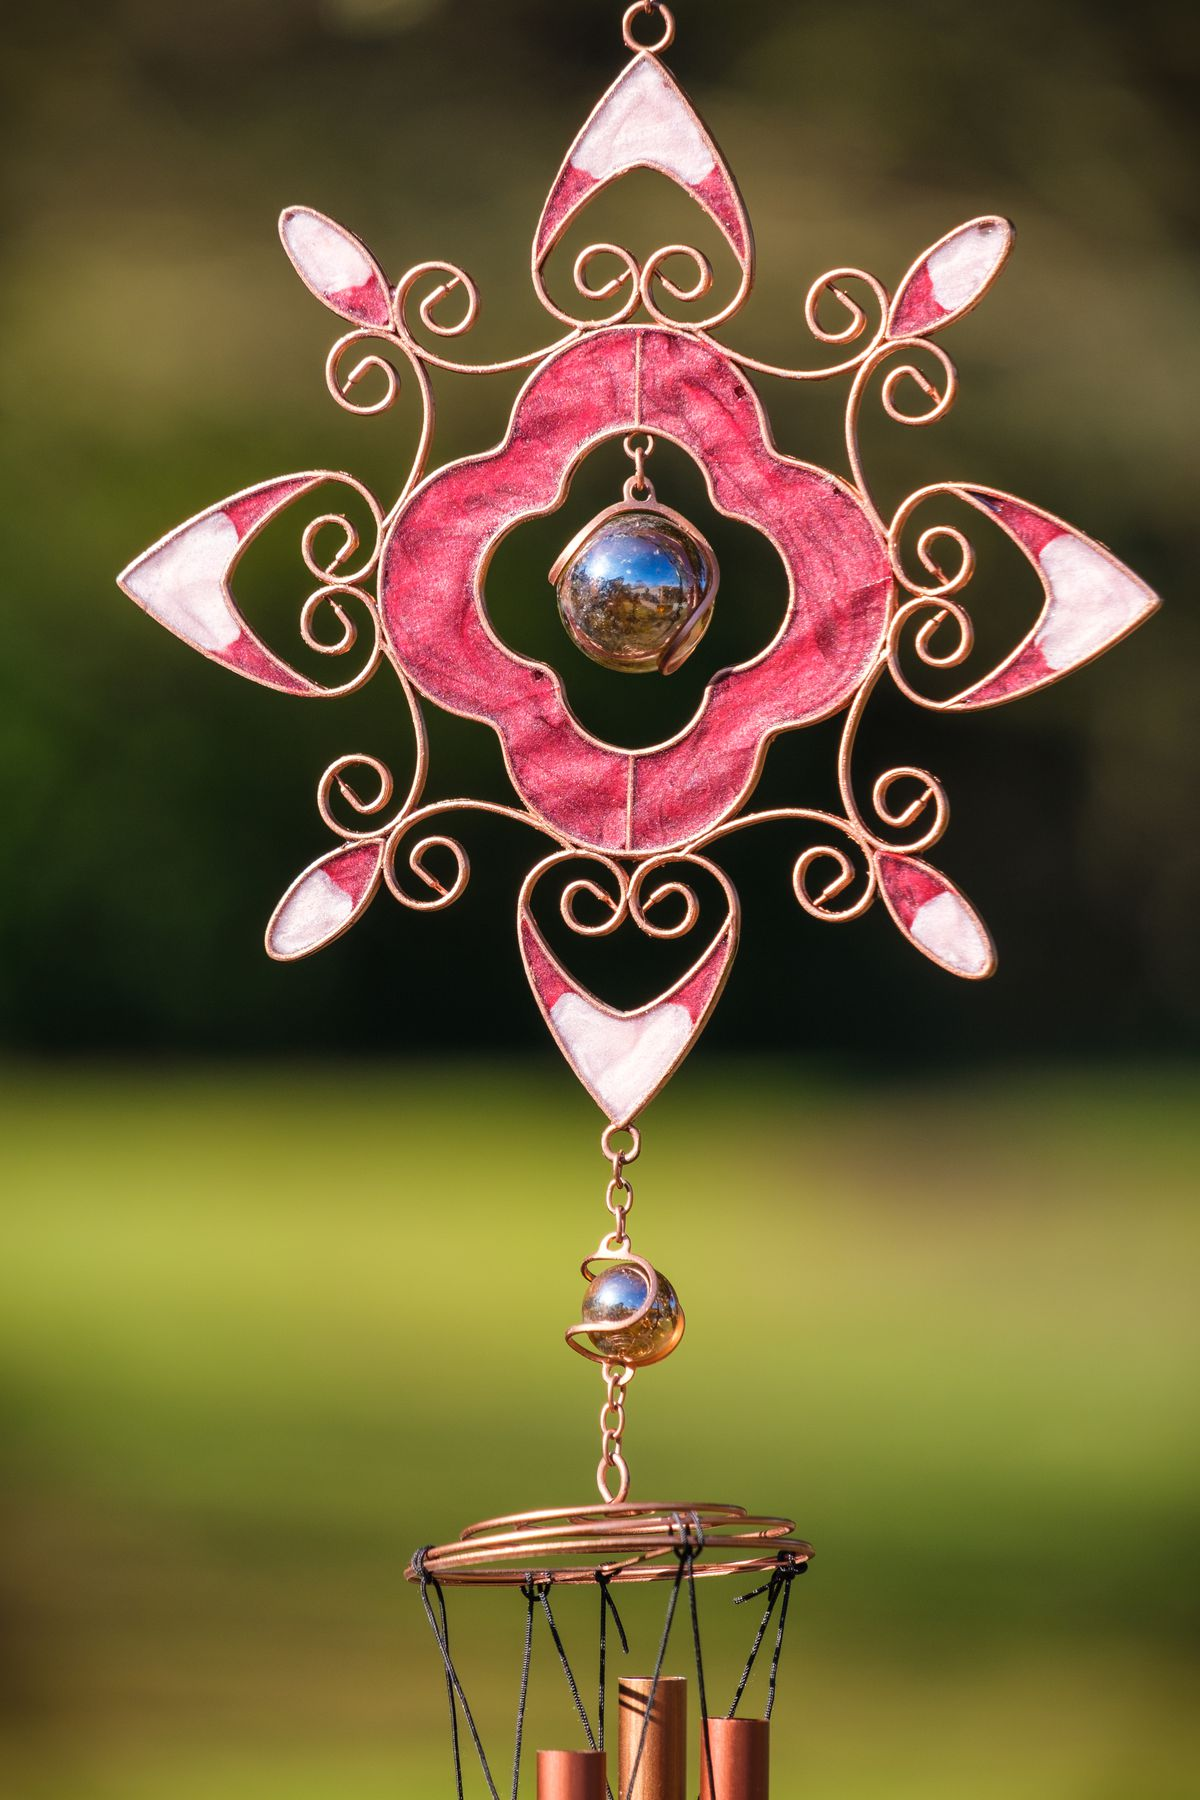 Hand-crafted windchimes will raise cash for Compton Care